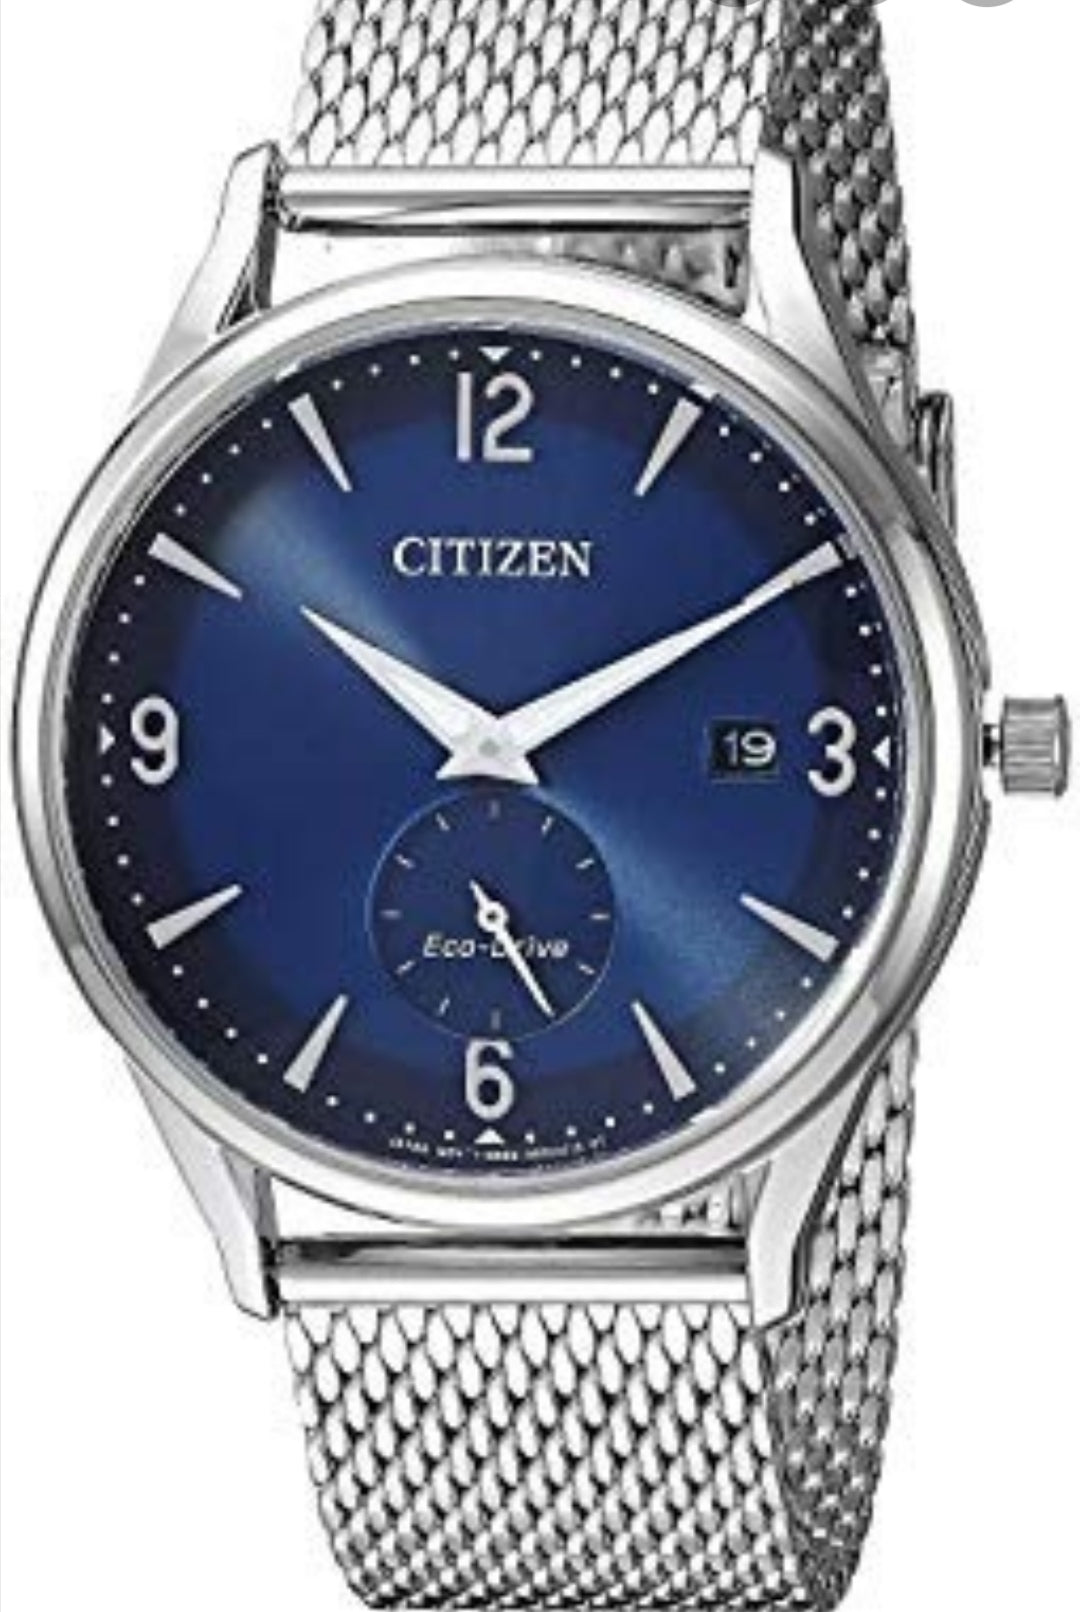 Citizen Eco Drive BTW